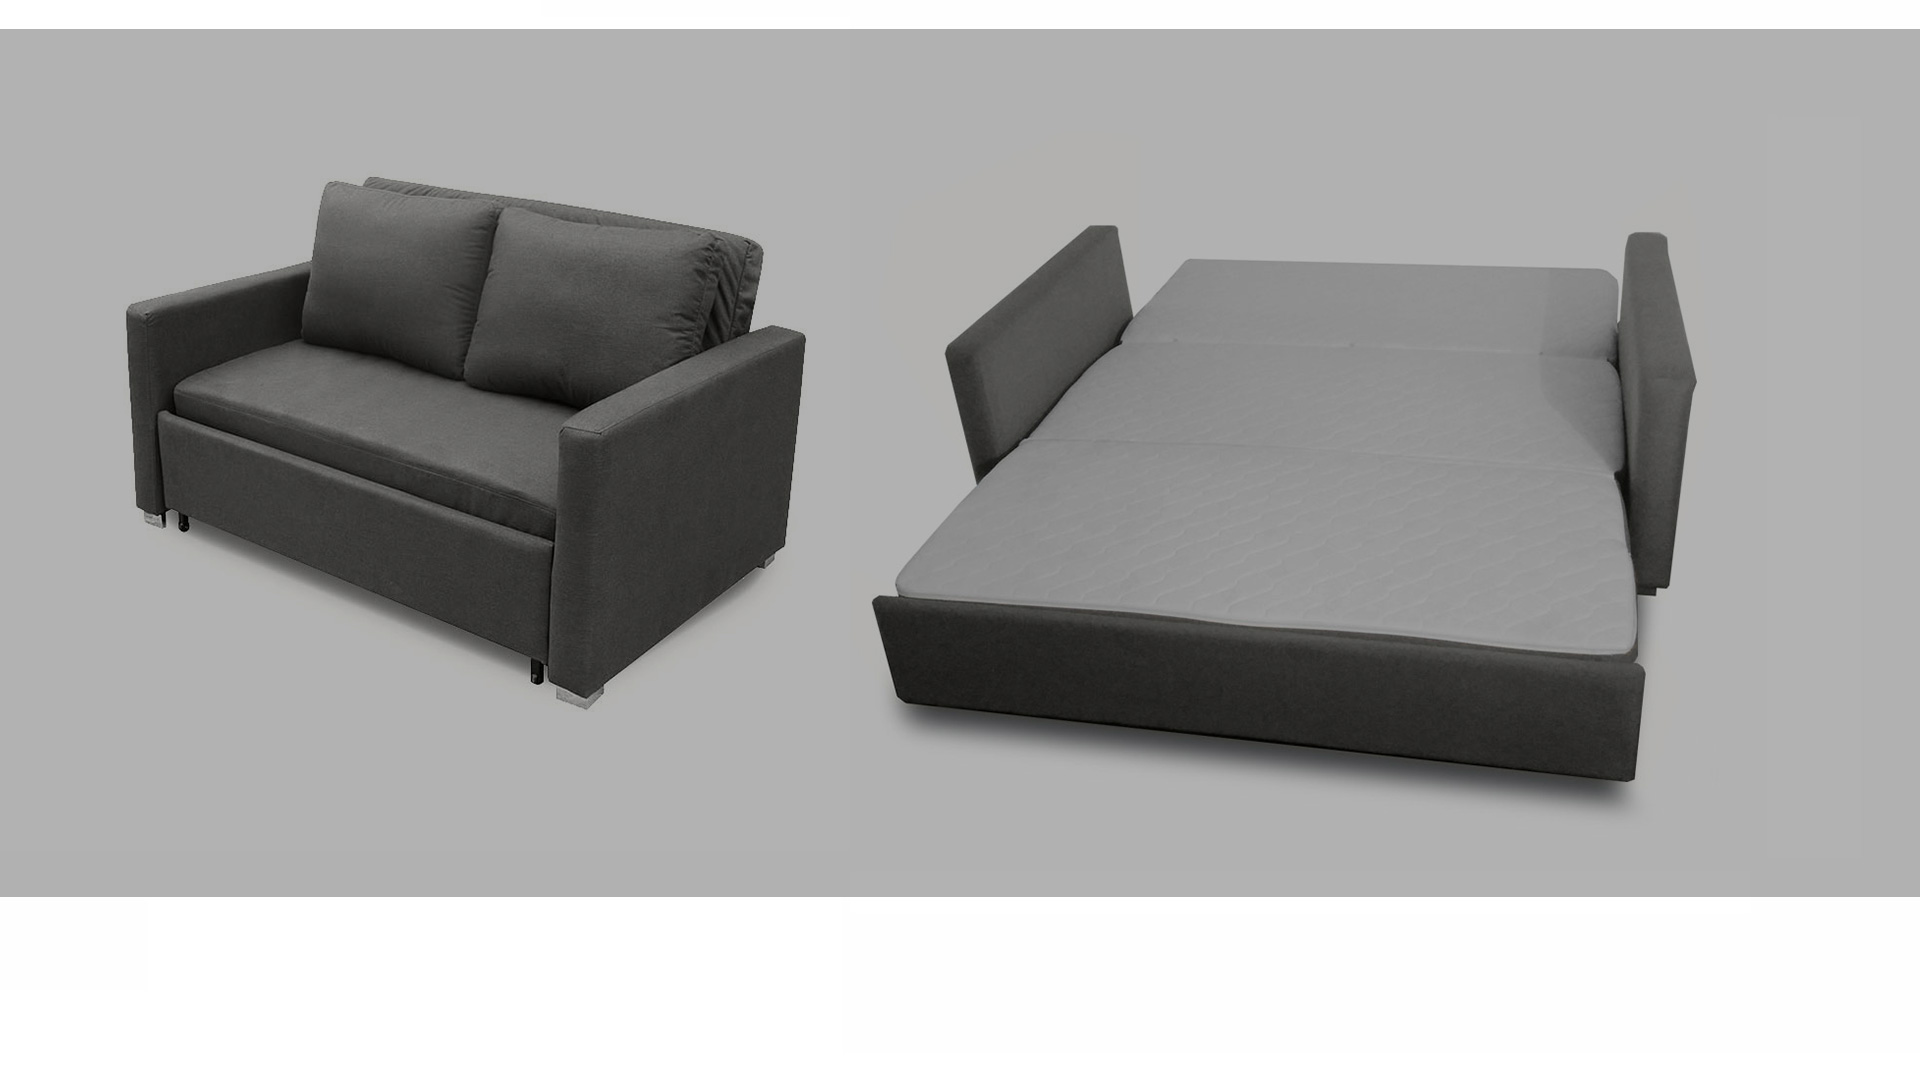 Merveilleux Space Saving Sofa Beds Made For Comfort